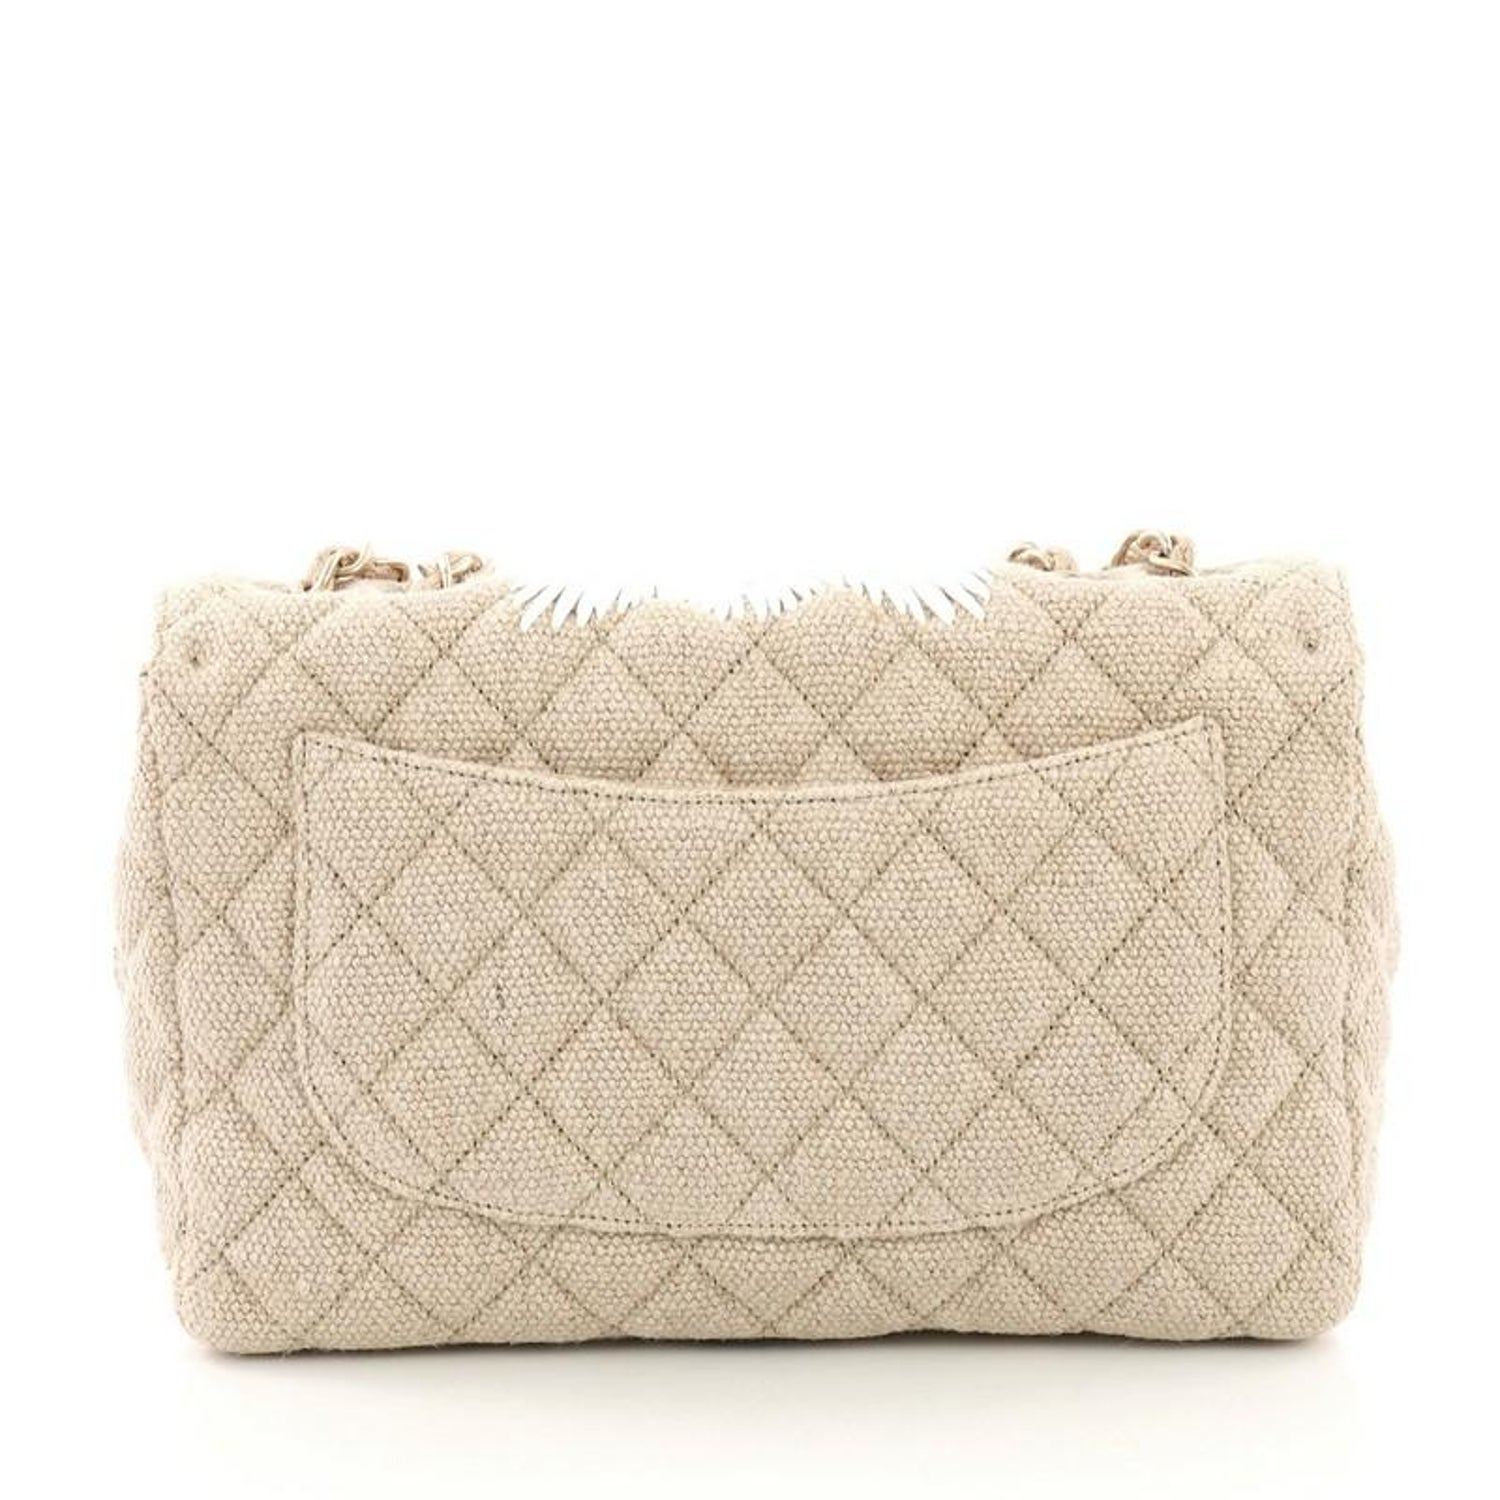 8bb921d85604 Chanel Country Coco Flap Bag Floral Embroidered Quilted Raffia Jumbo at  1stdibs